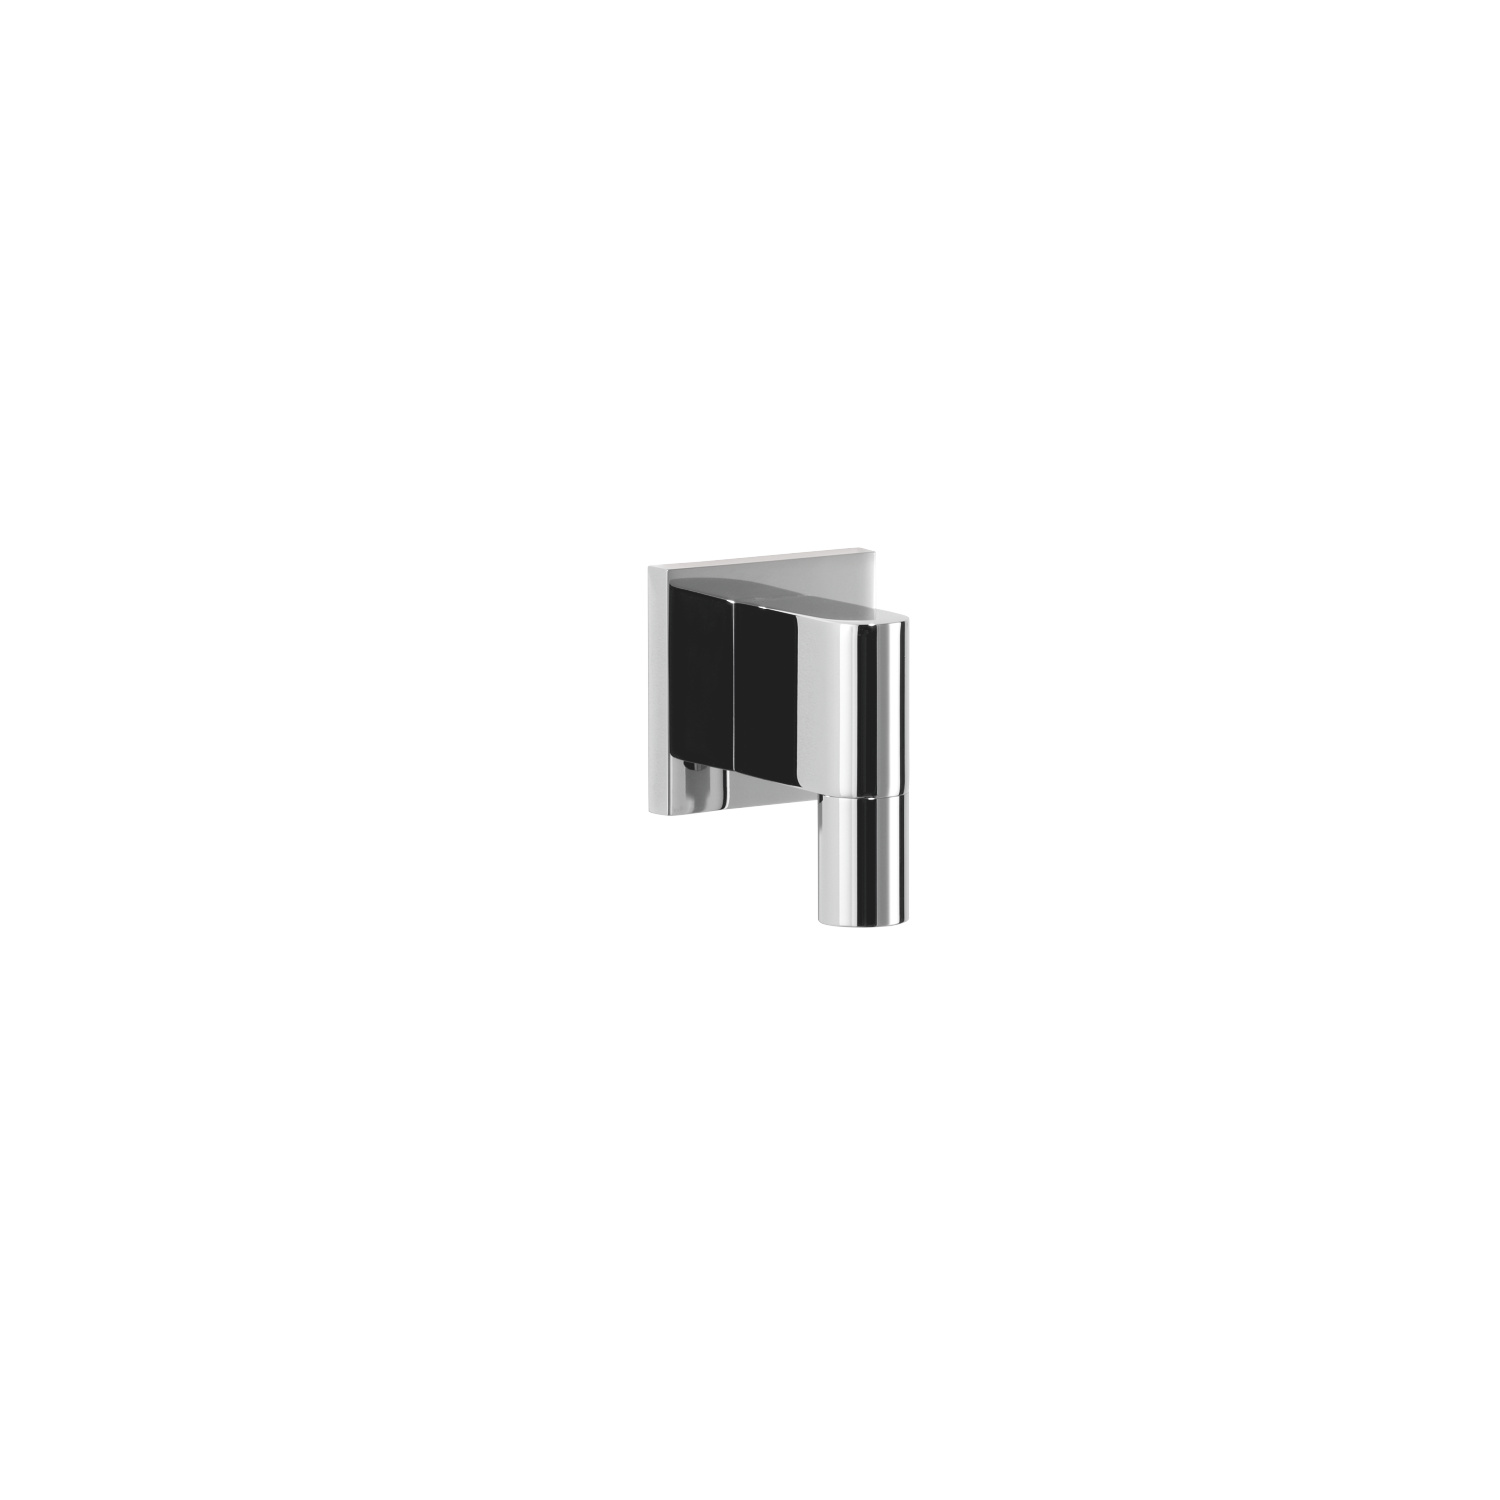 Wall elbow - polished chrome - 28 450 980-00